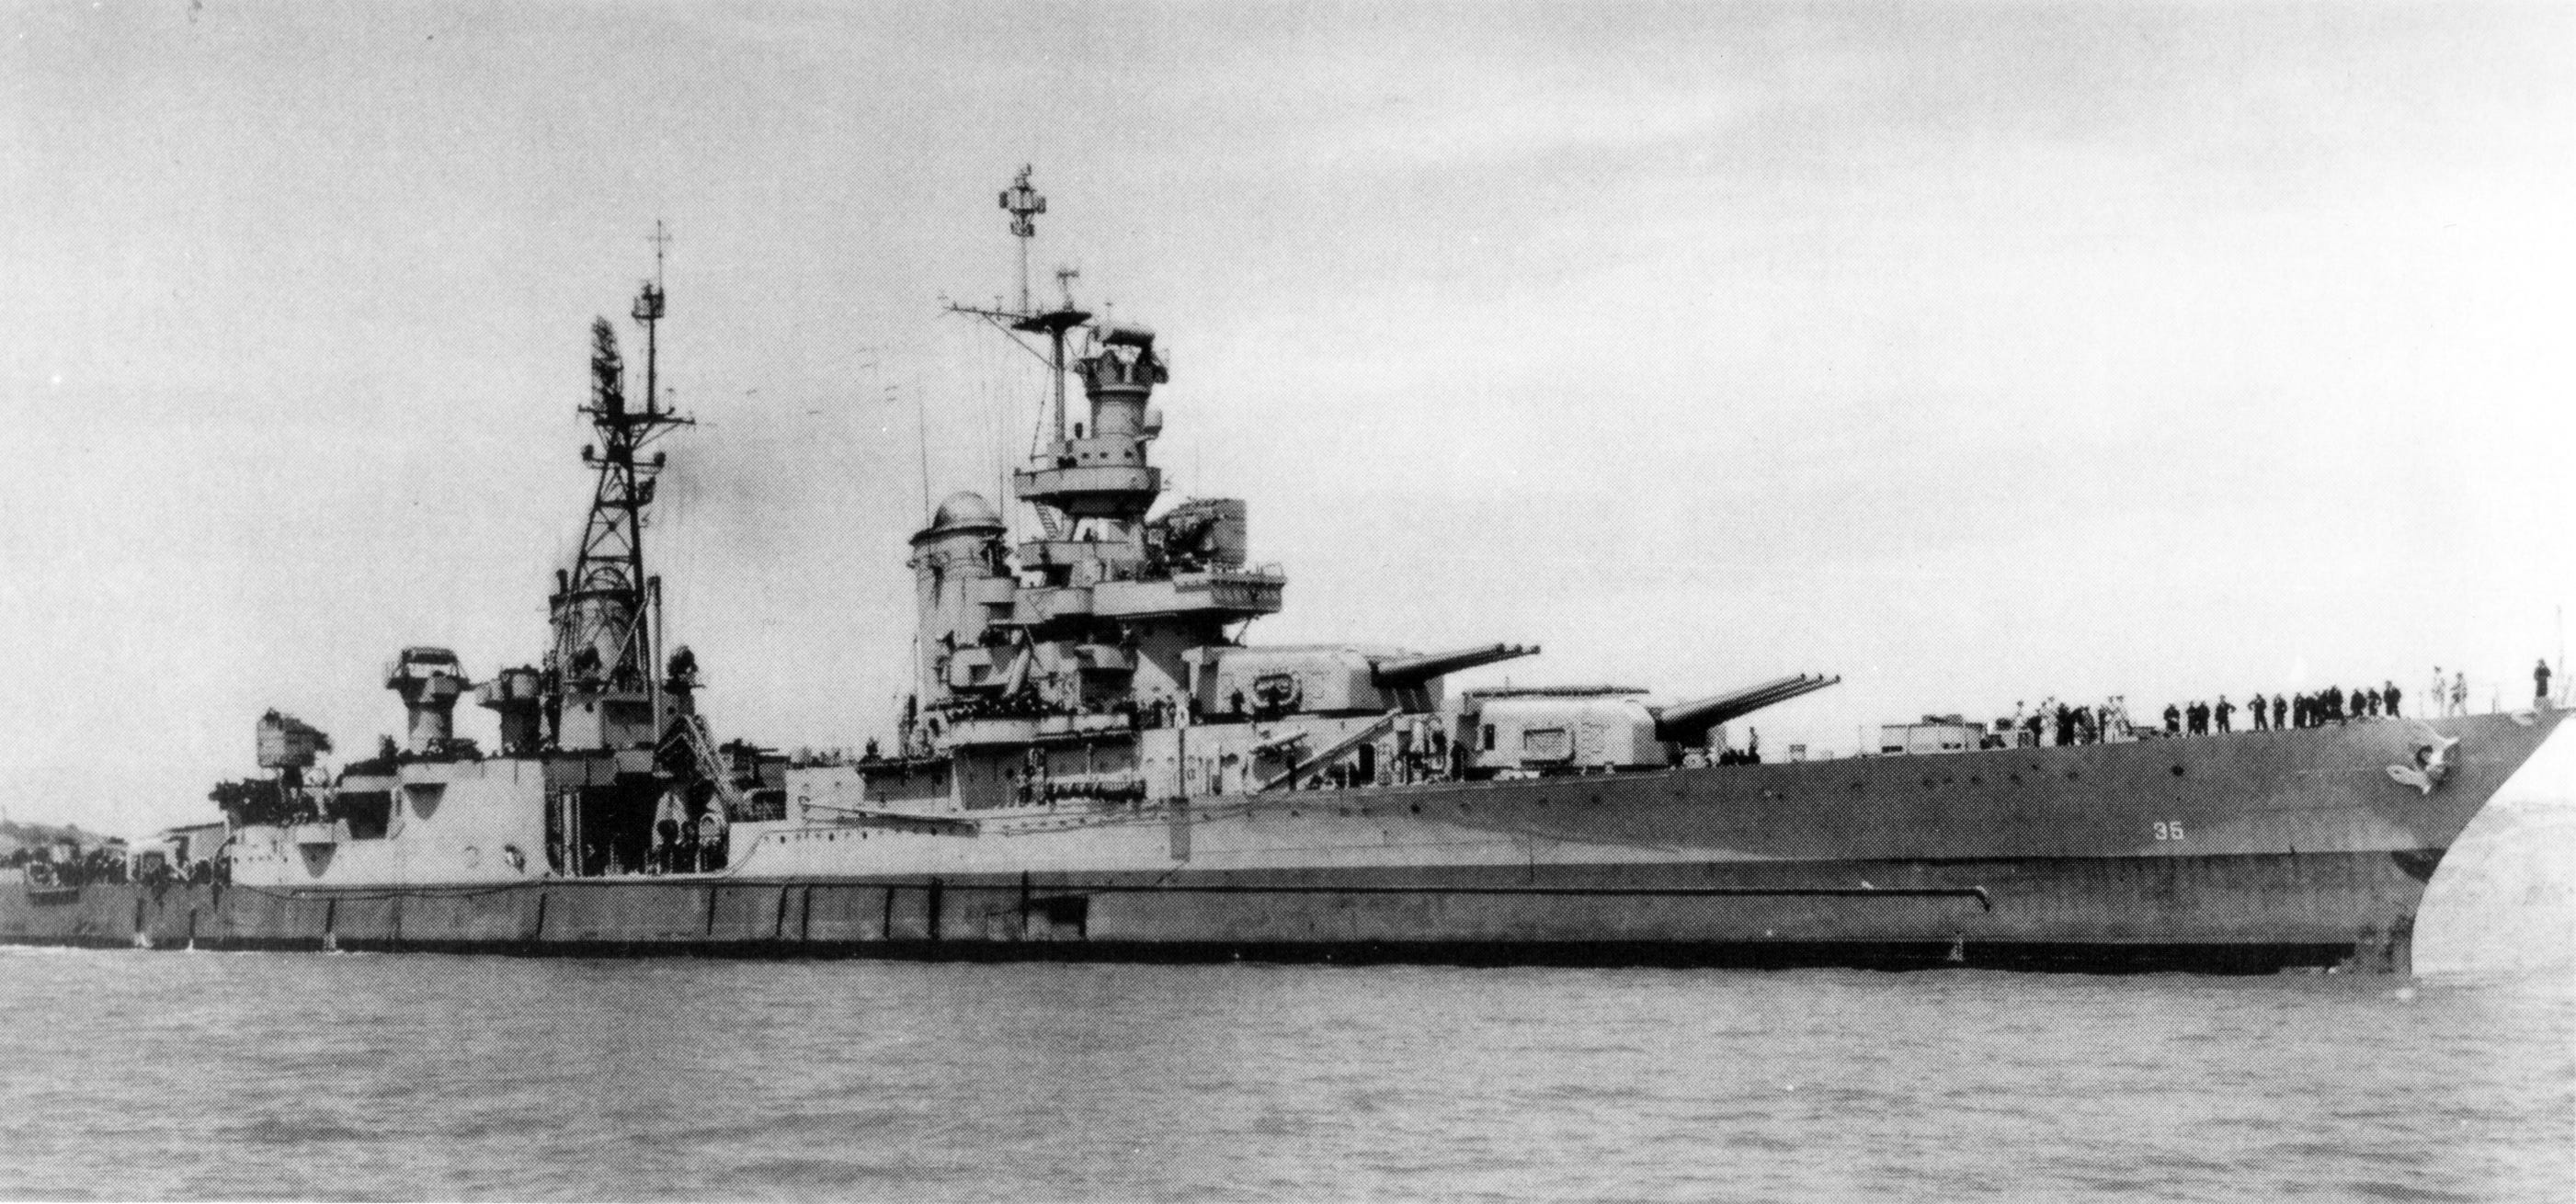 The last picture of the USS Indianapolis taken off Tinian Island shortly after it delivered the components of the atomic bomb and before its ill-fated final voyage in July 1945.